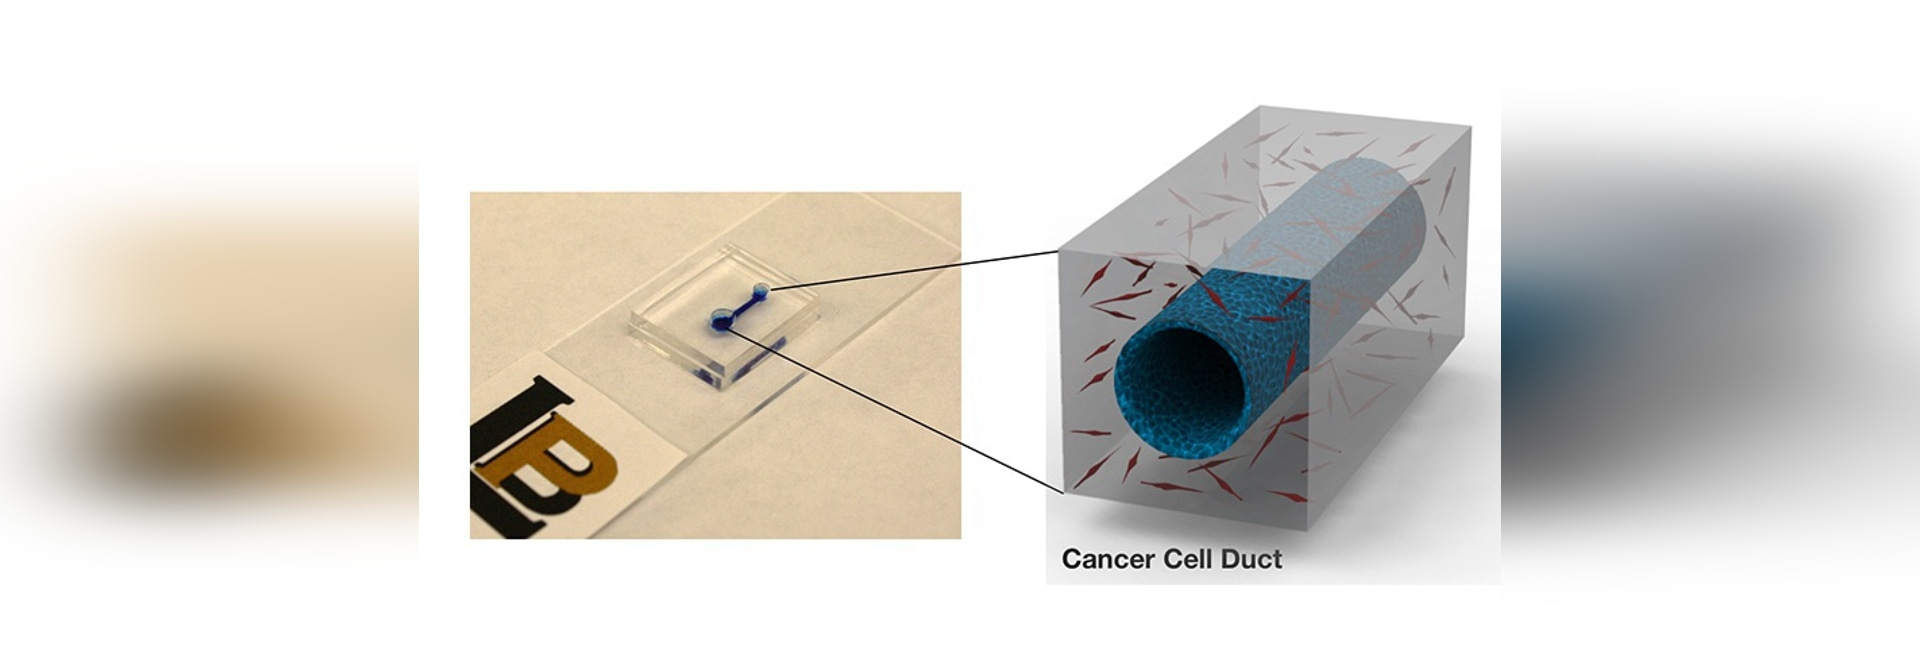 Microfluidic Device to Study How Pancreatic Cancer Develops Clots